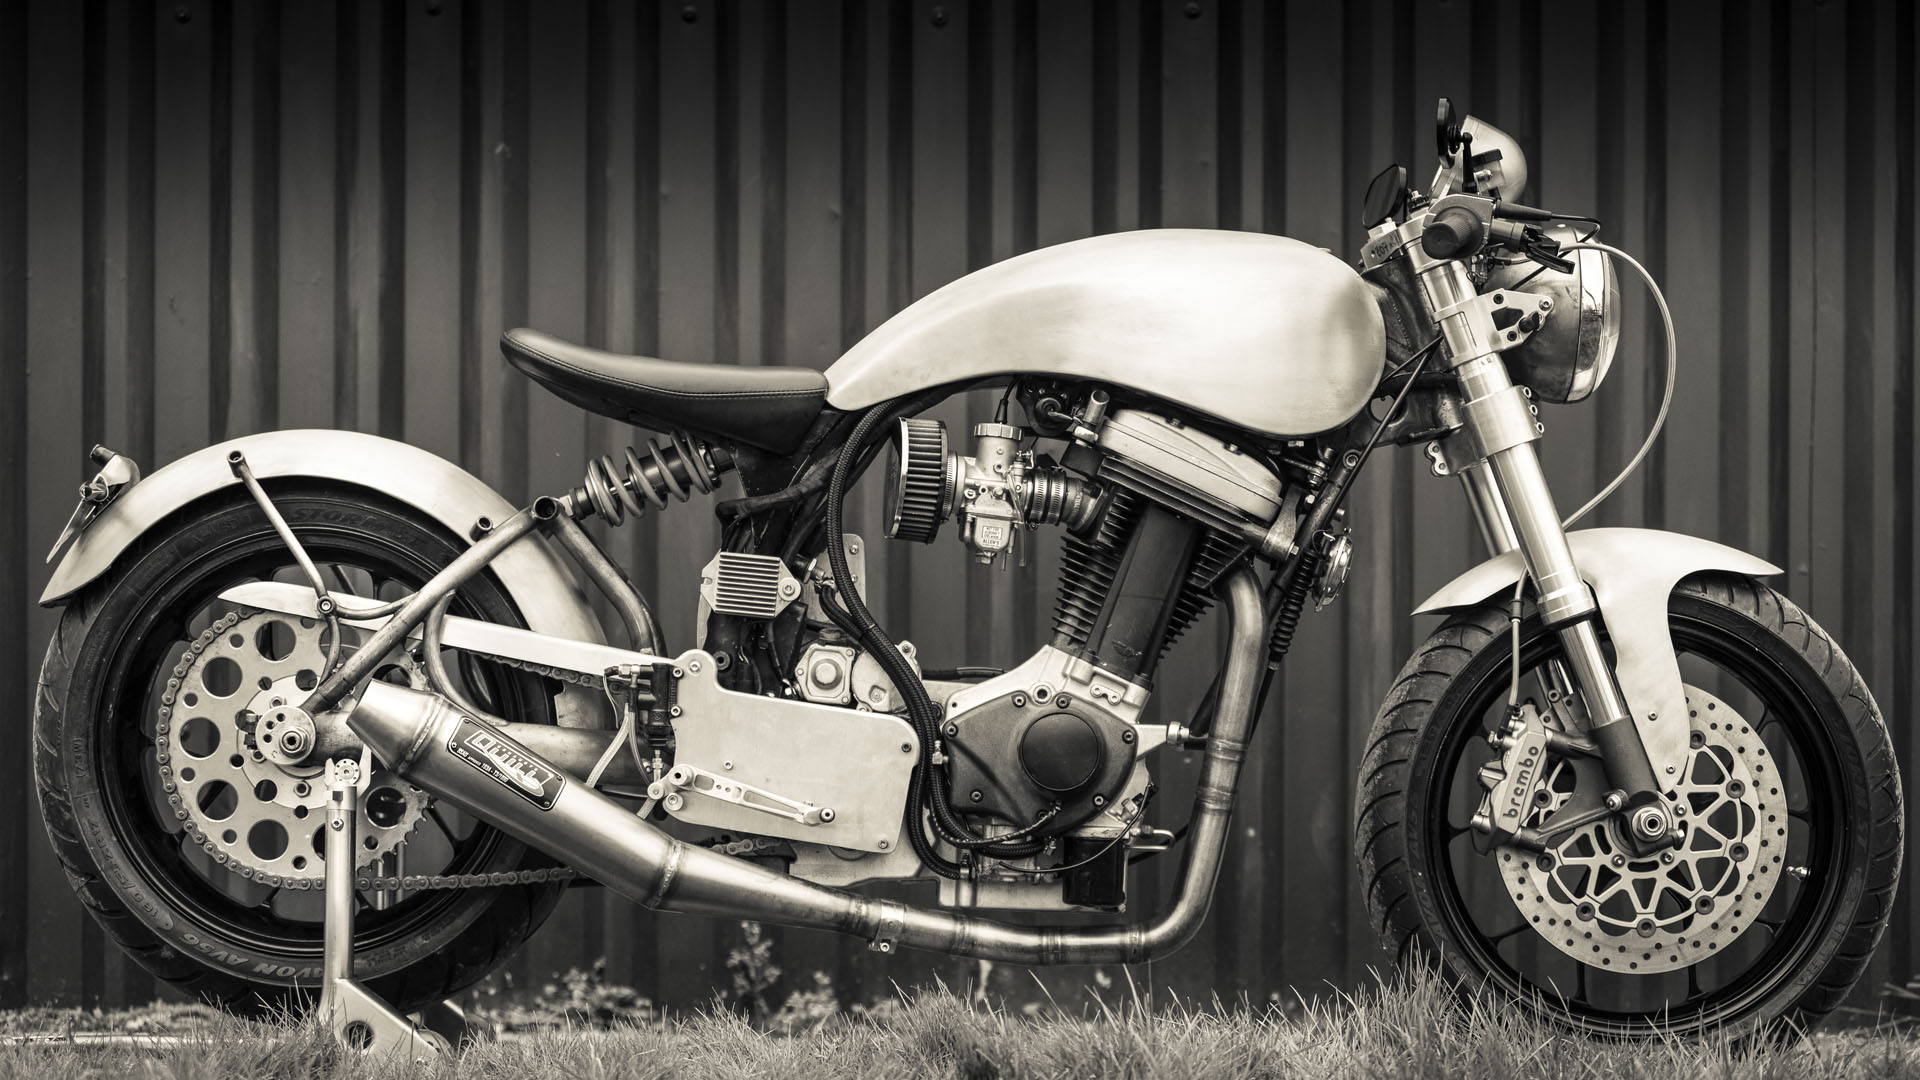 Motorcycle photograph